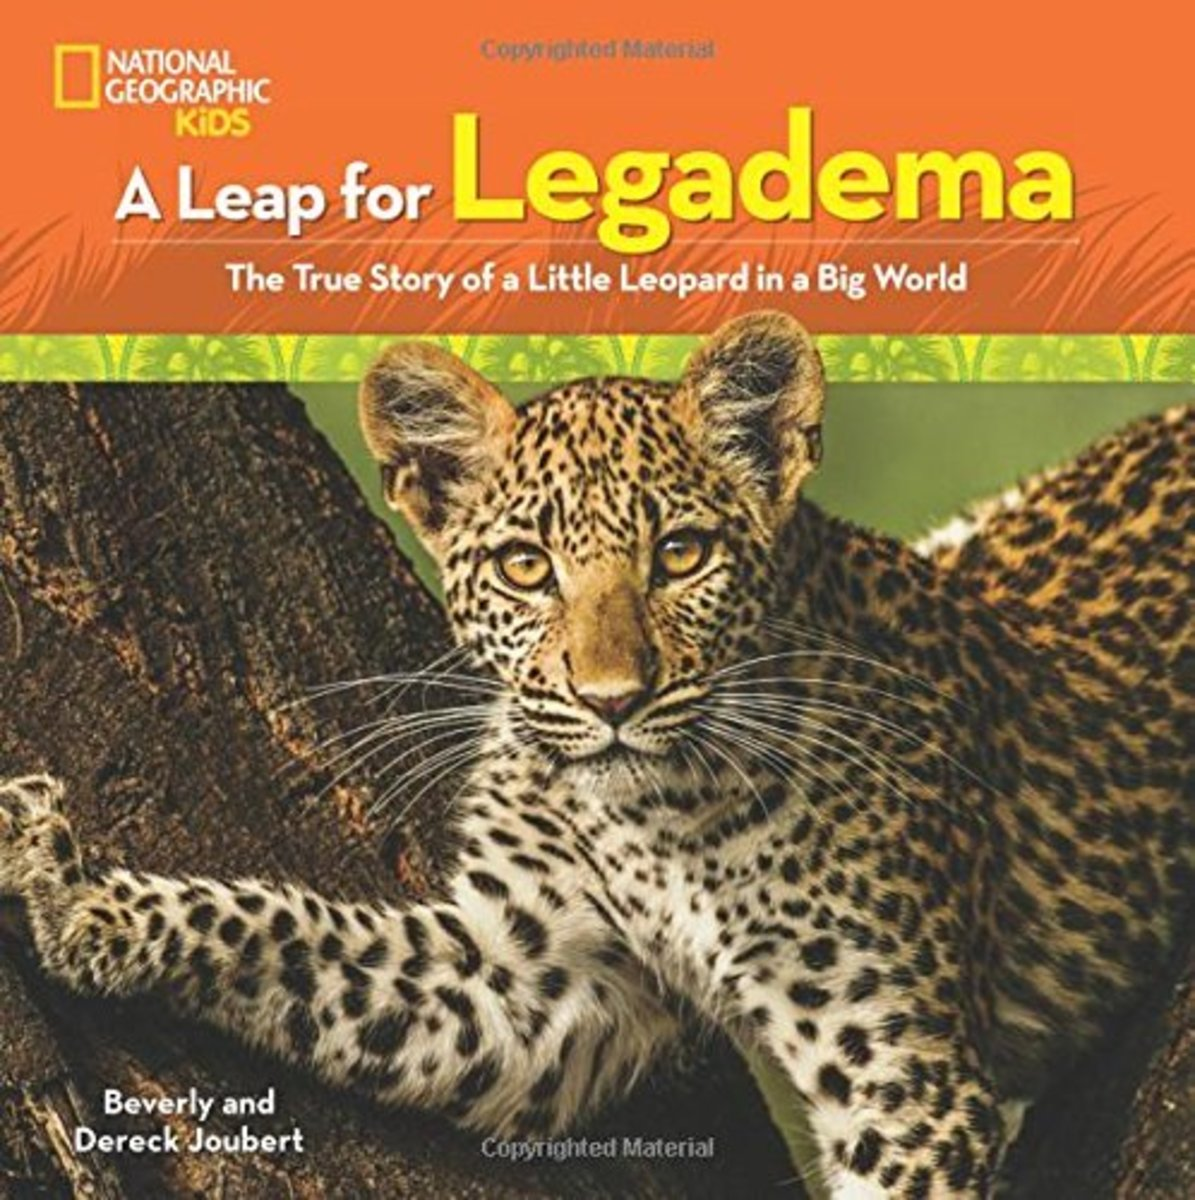 A Leap for Legadema by Beverly and Dereck Joubert